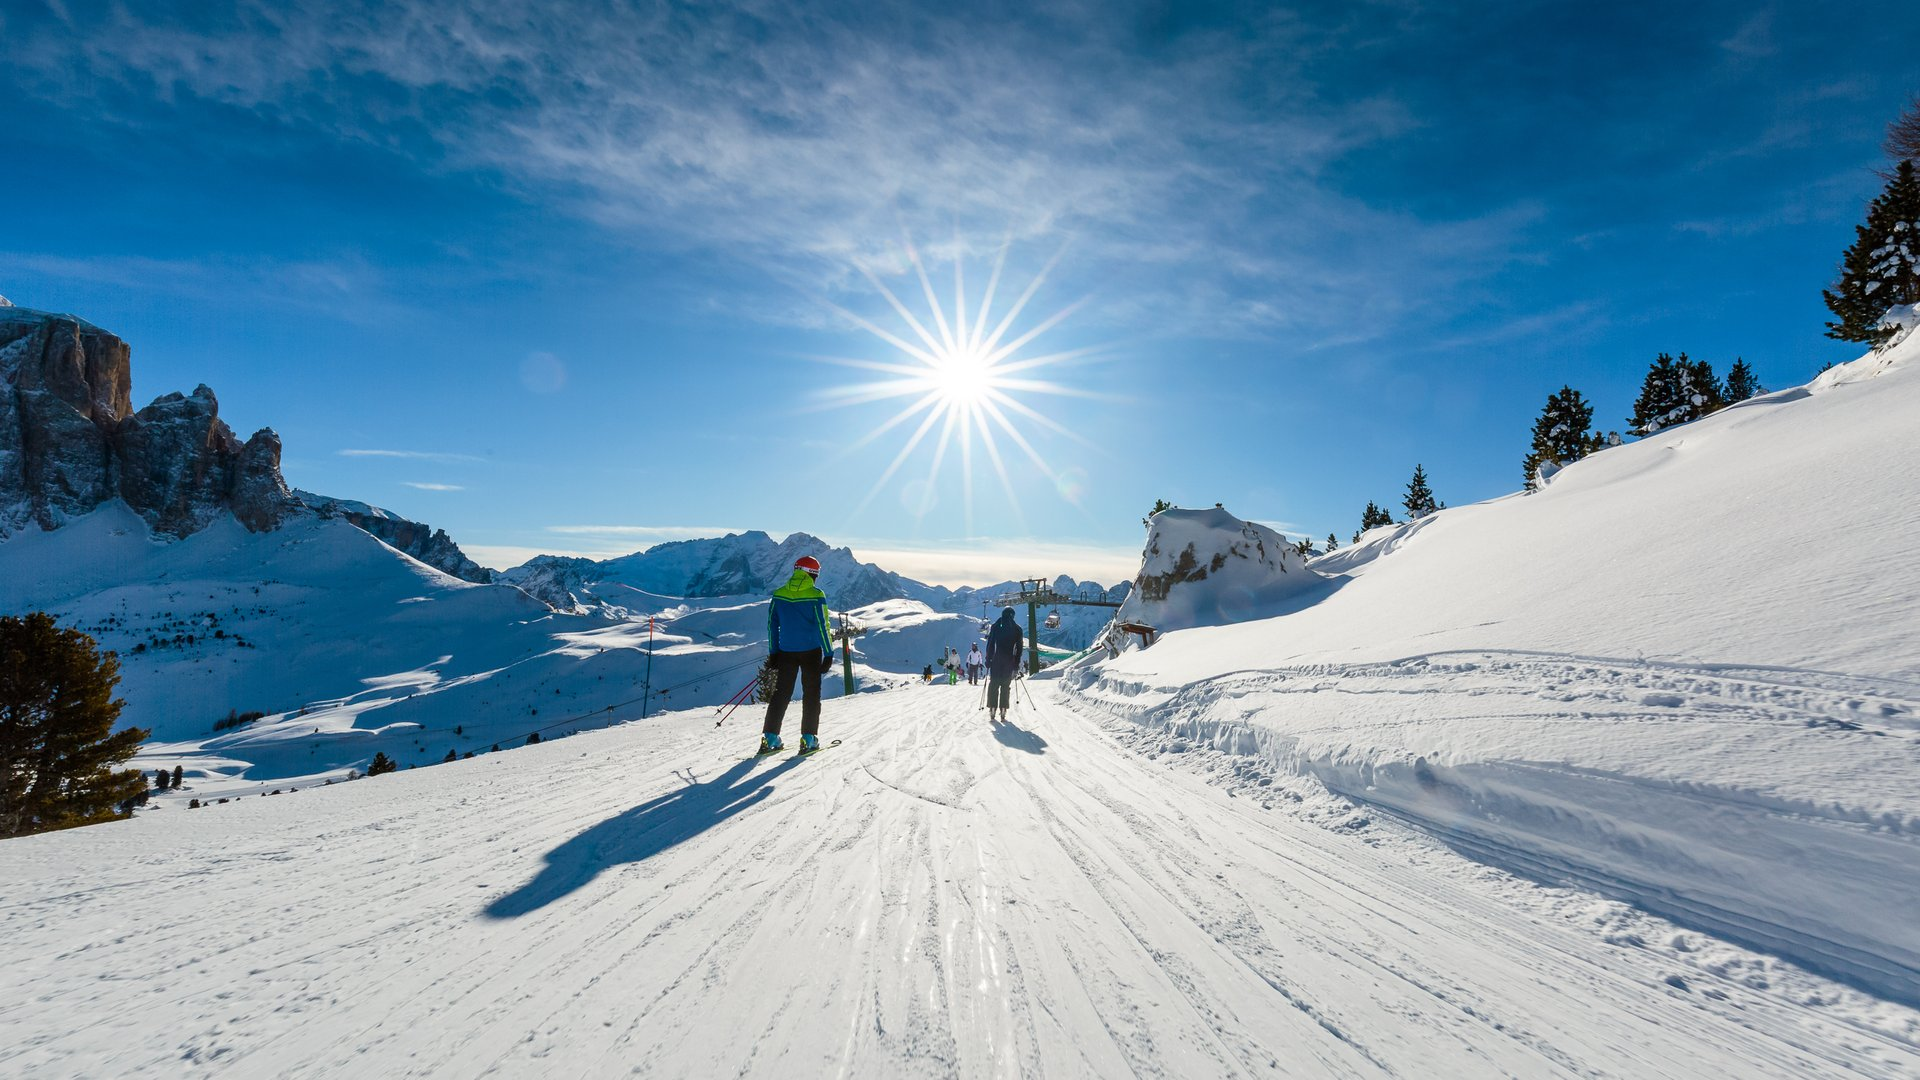 Skiing & Snowboarding in Italy 2020 - Best Time